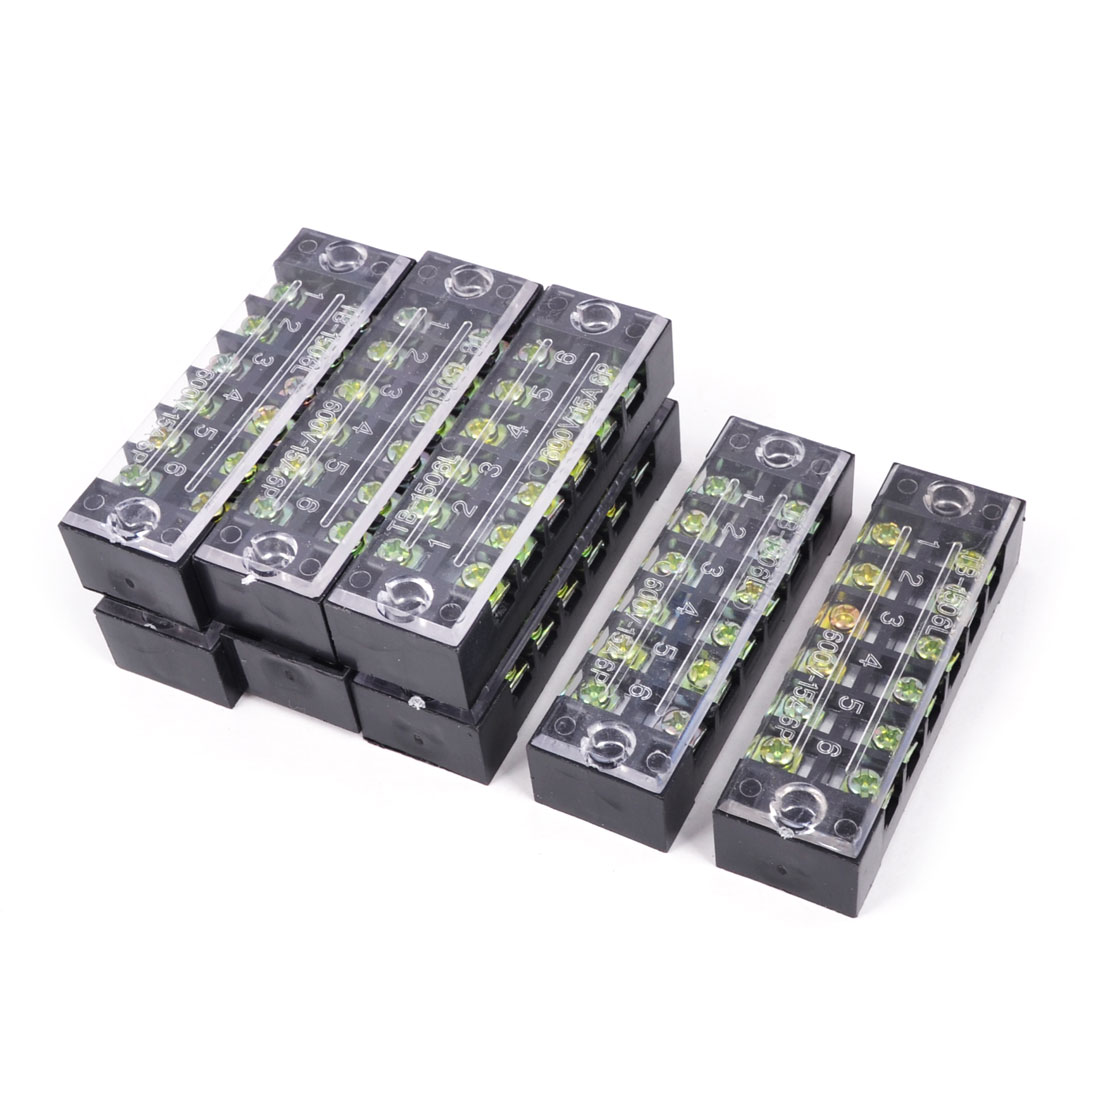 TB-1506 Dual Row 6P Screw Terminal Barrier Block Stripe 600V 15A 8Pcs